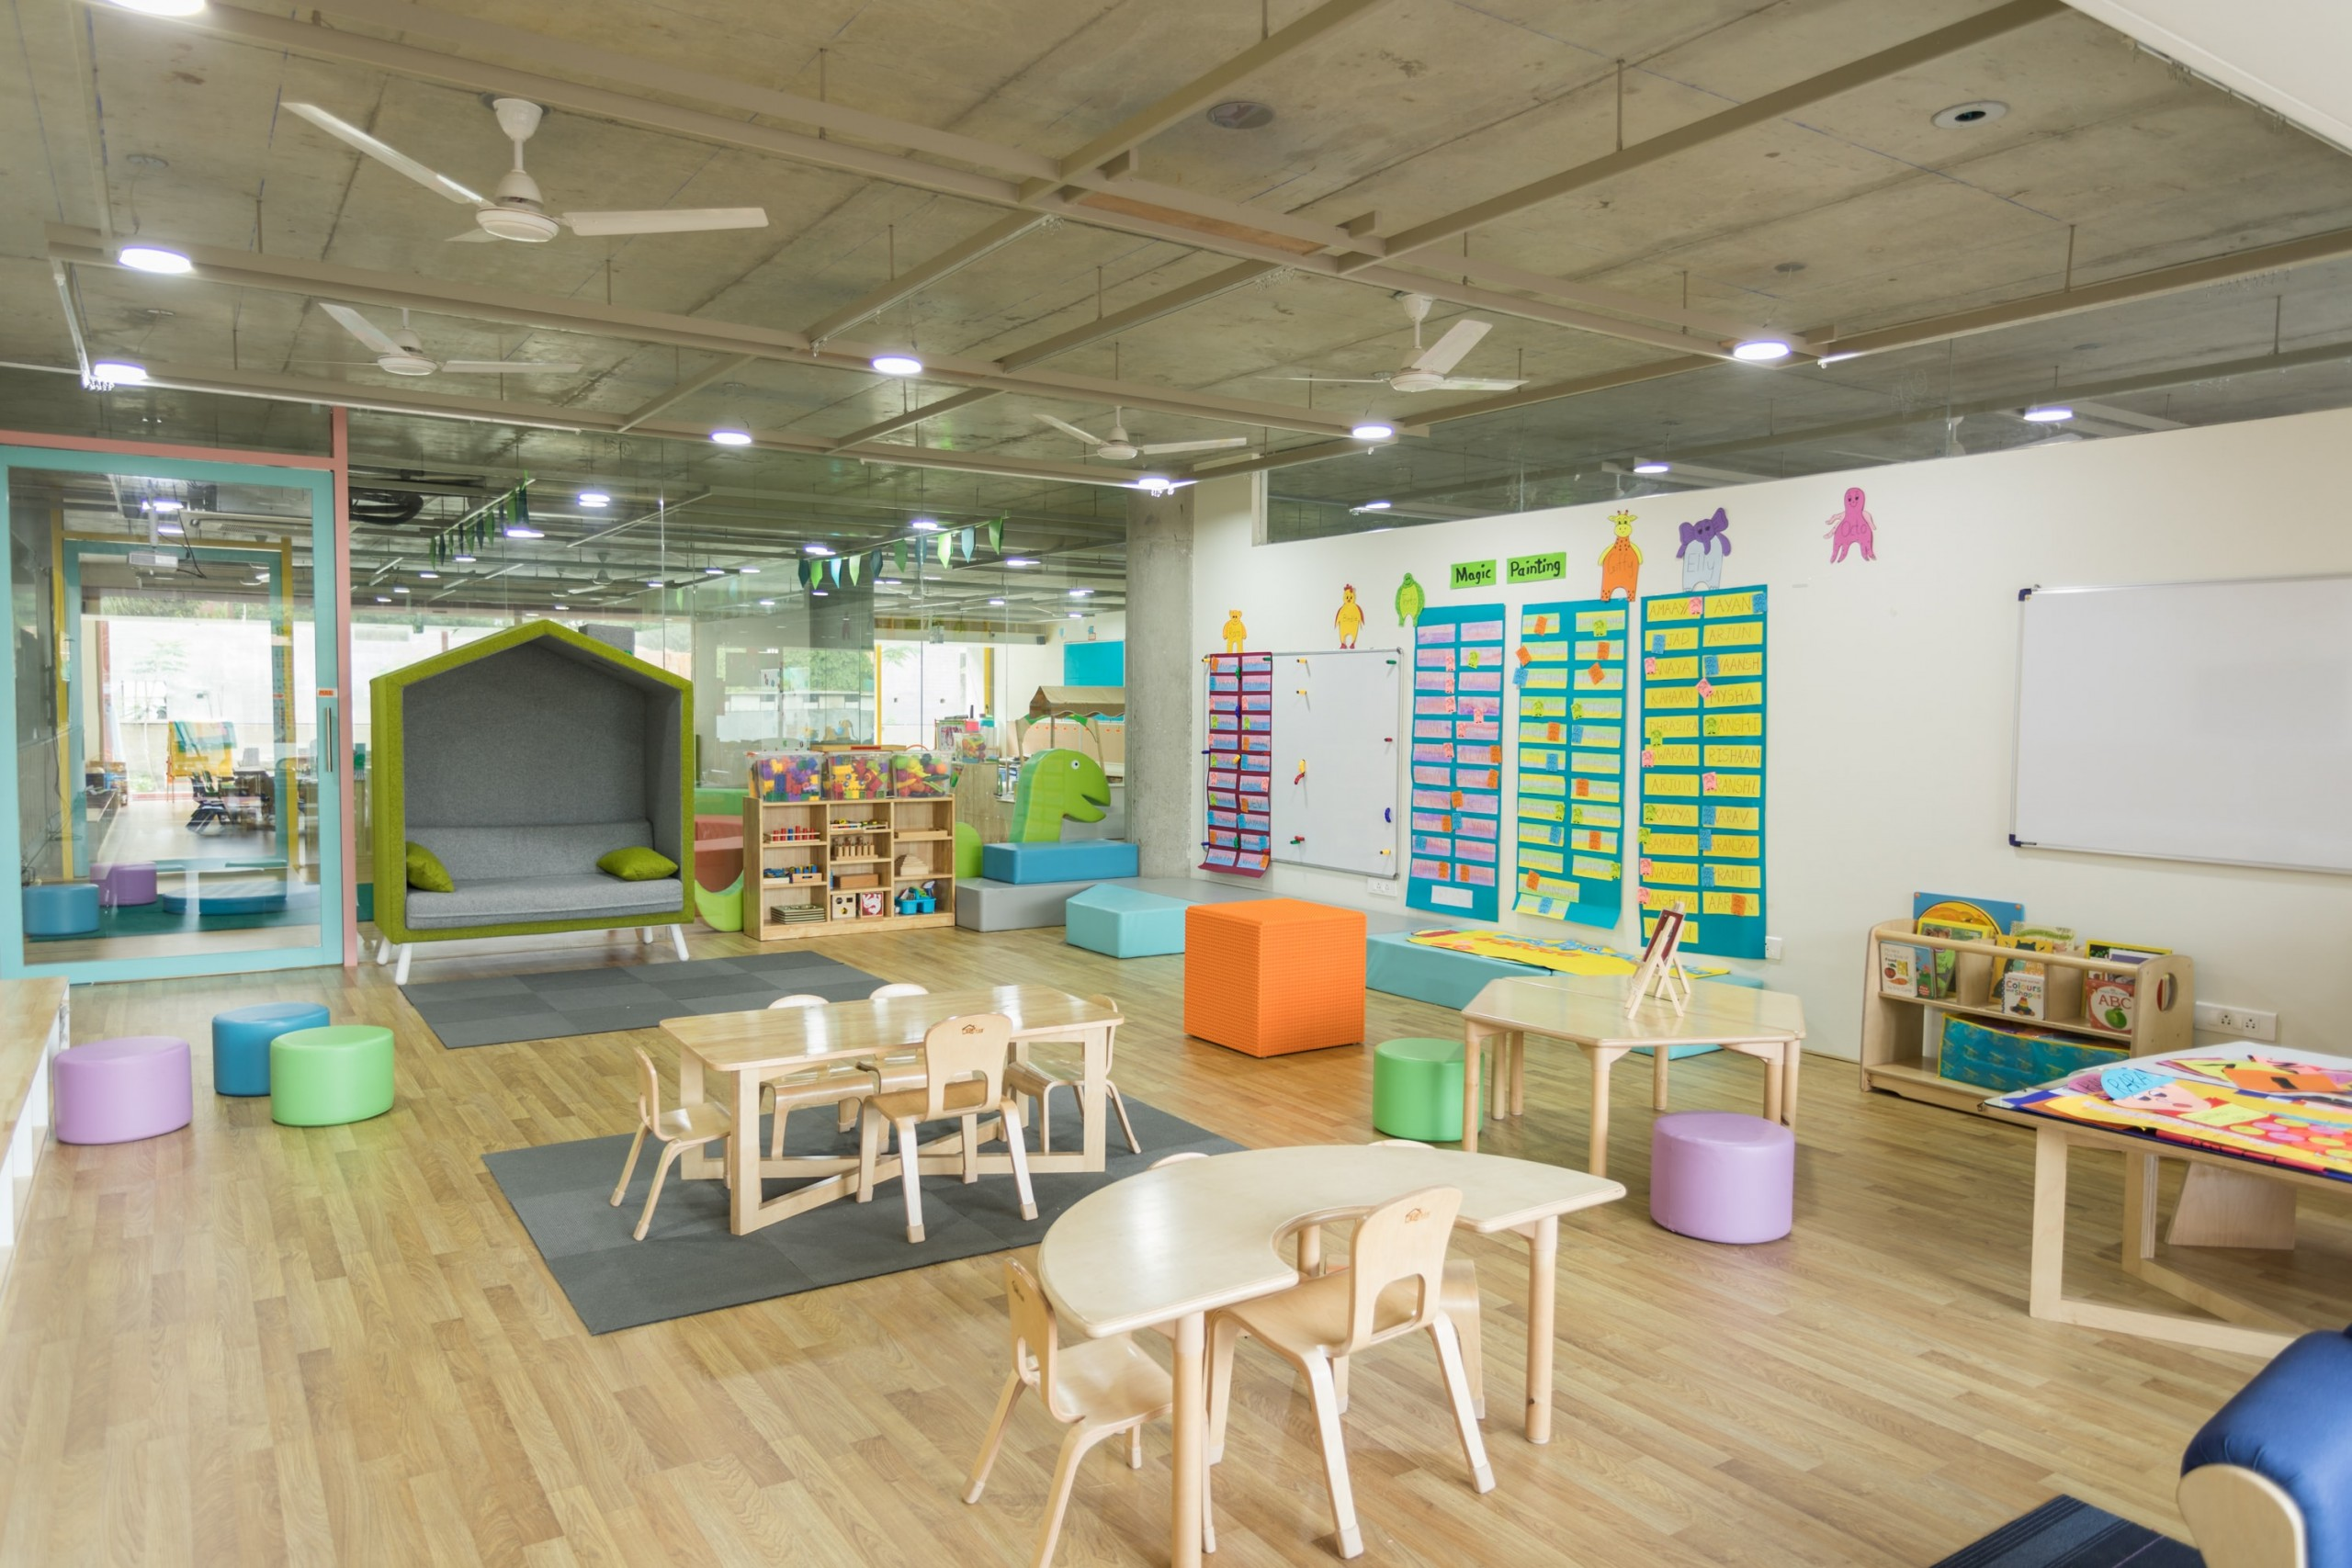 Interior photo showing colourful kids furniture on a wood floor with lots of glass and natural light.